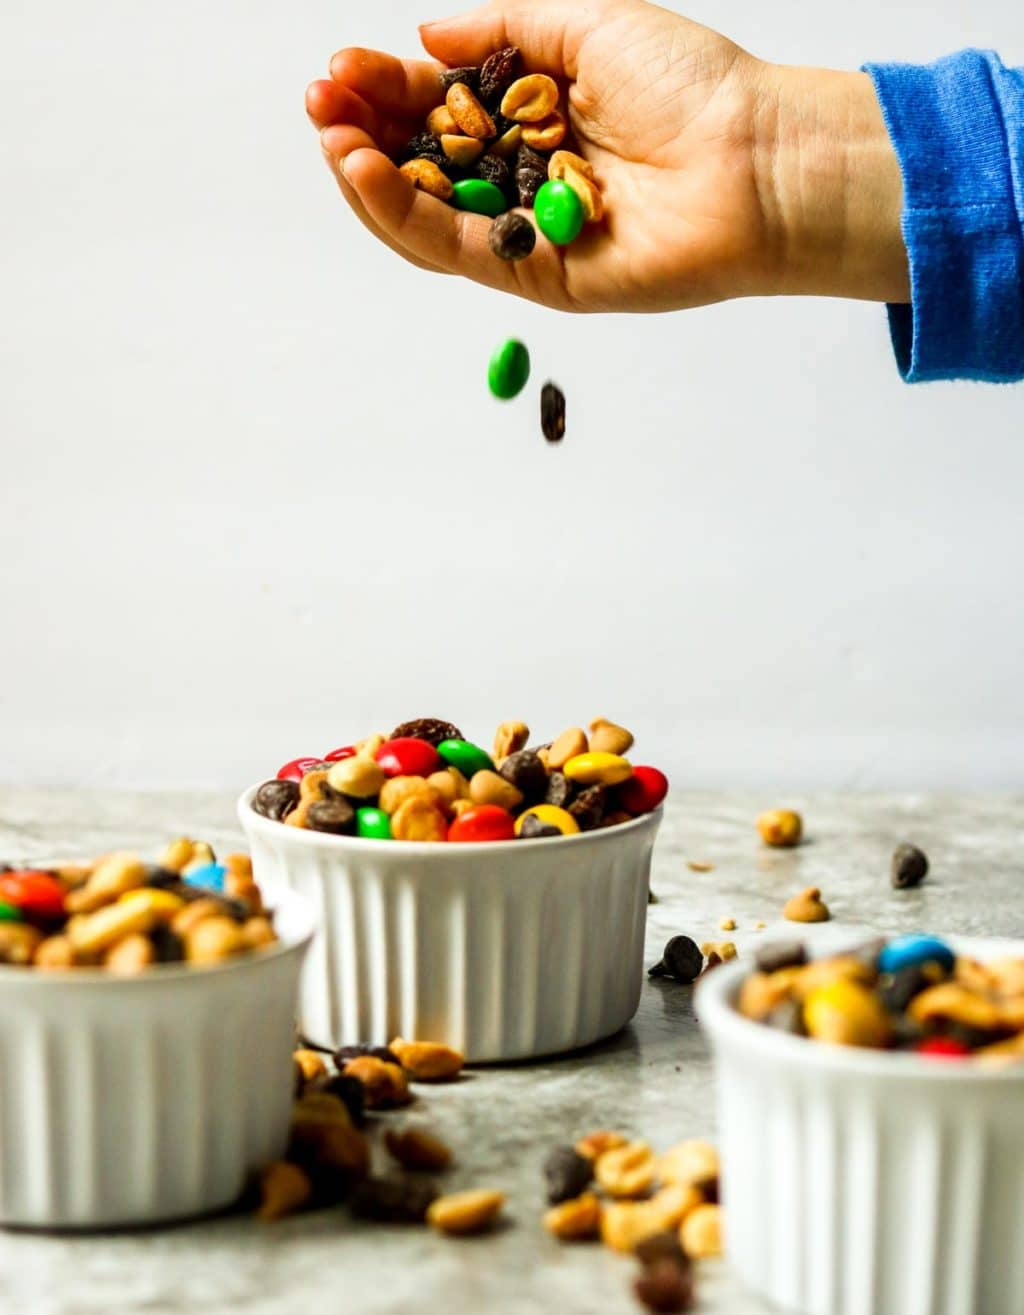 Monster Trail Mix spilling out of a hand into white bowls